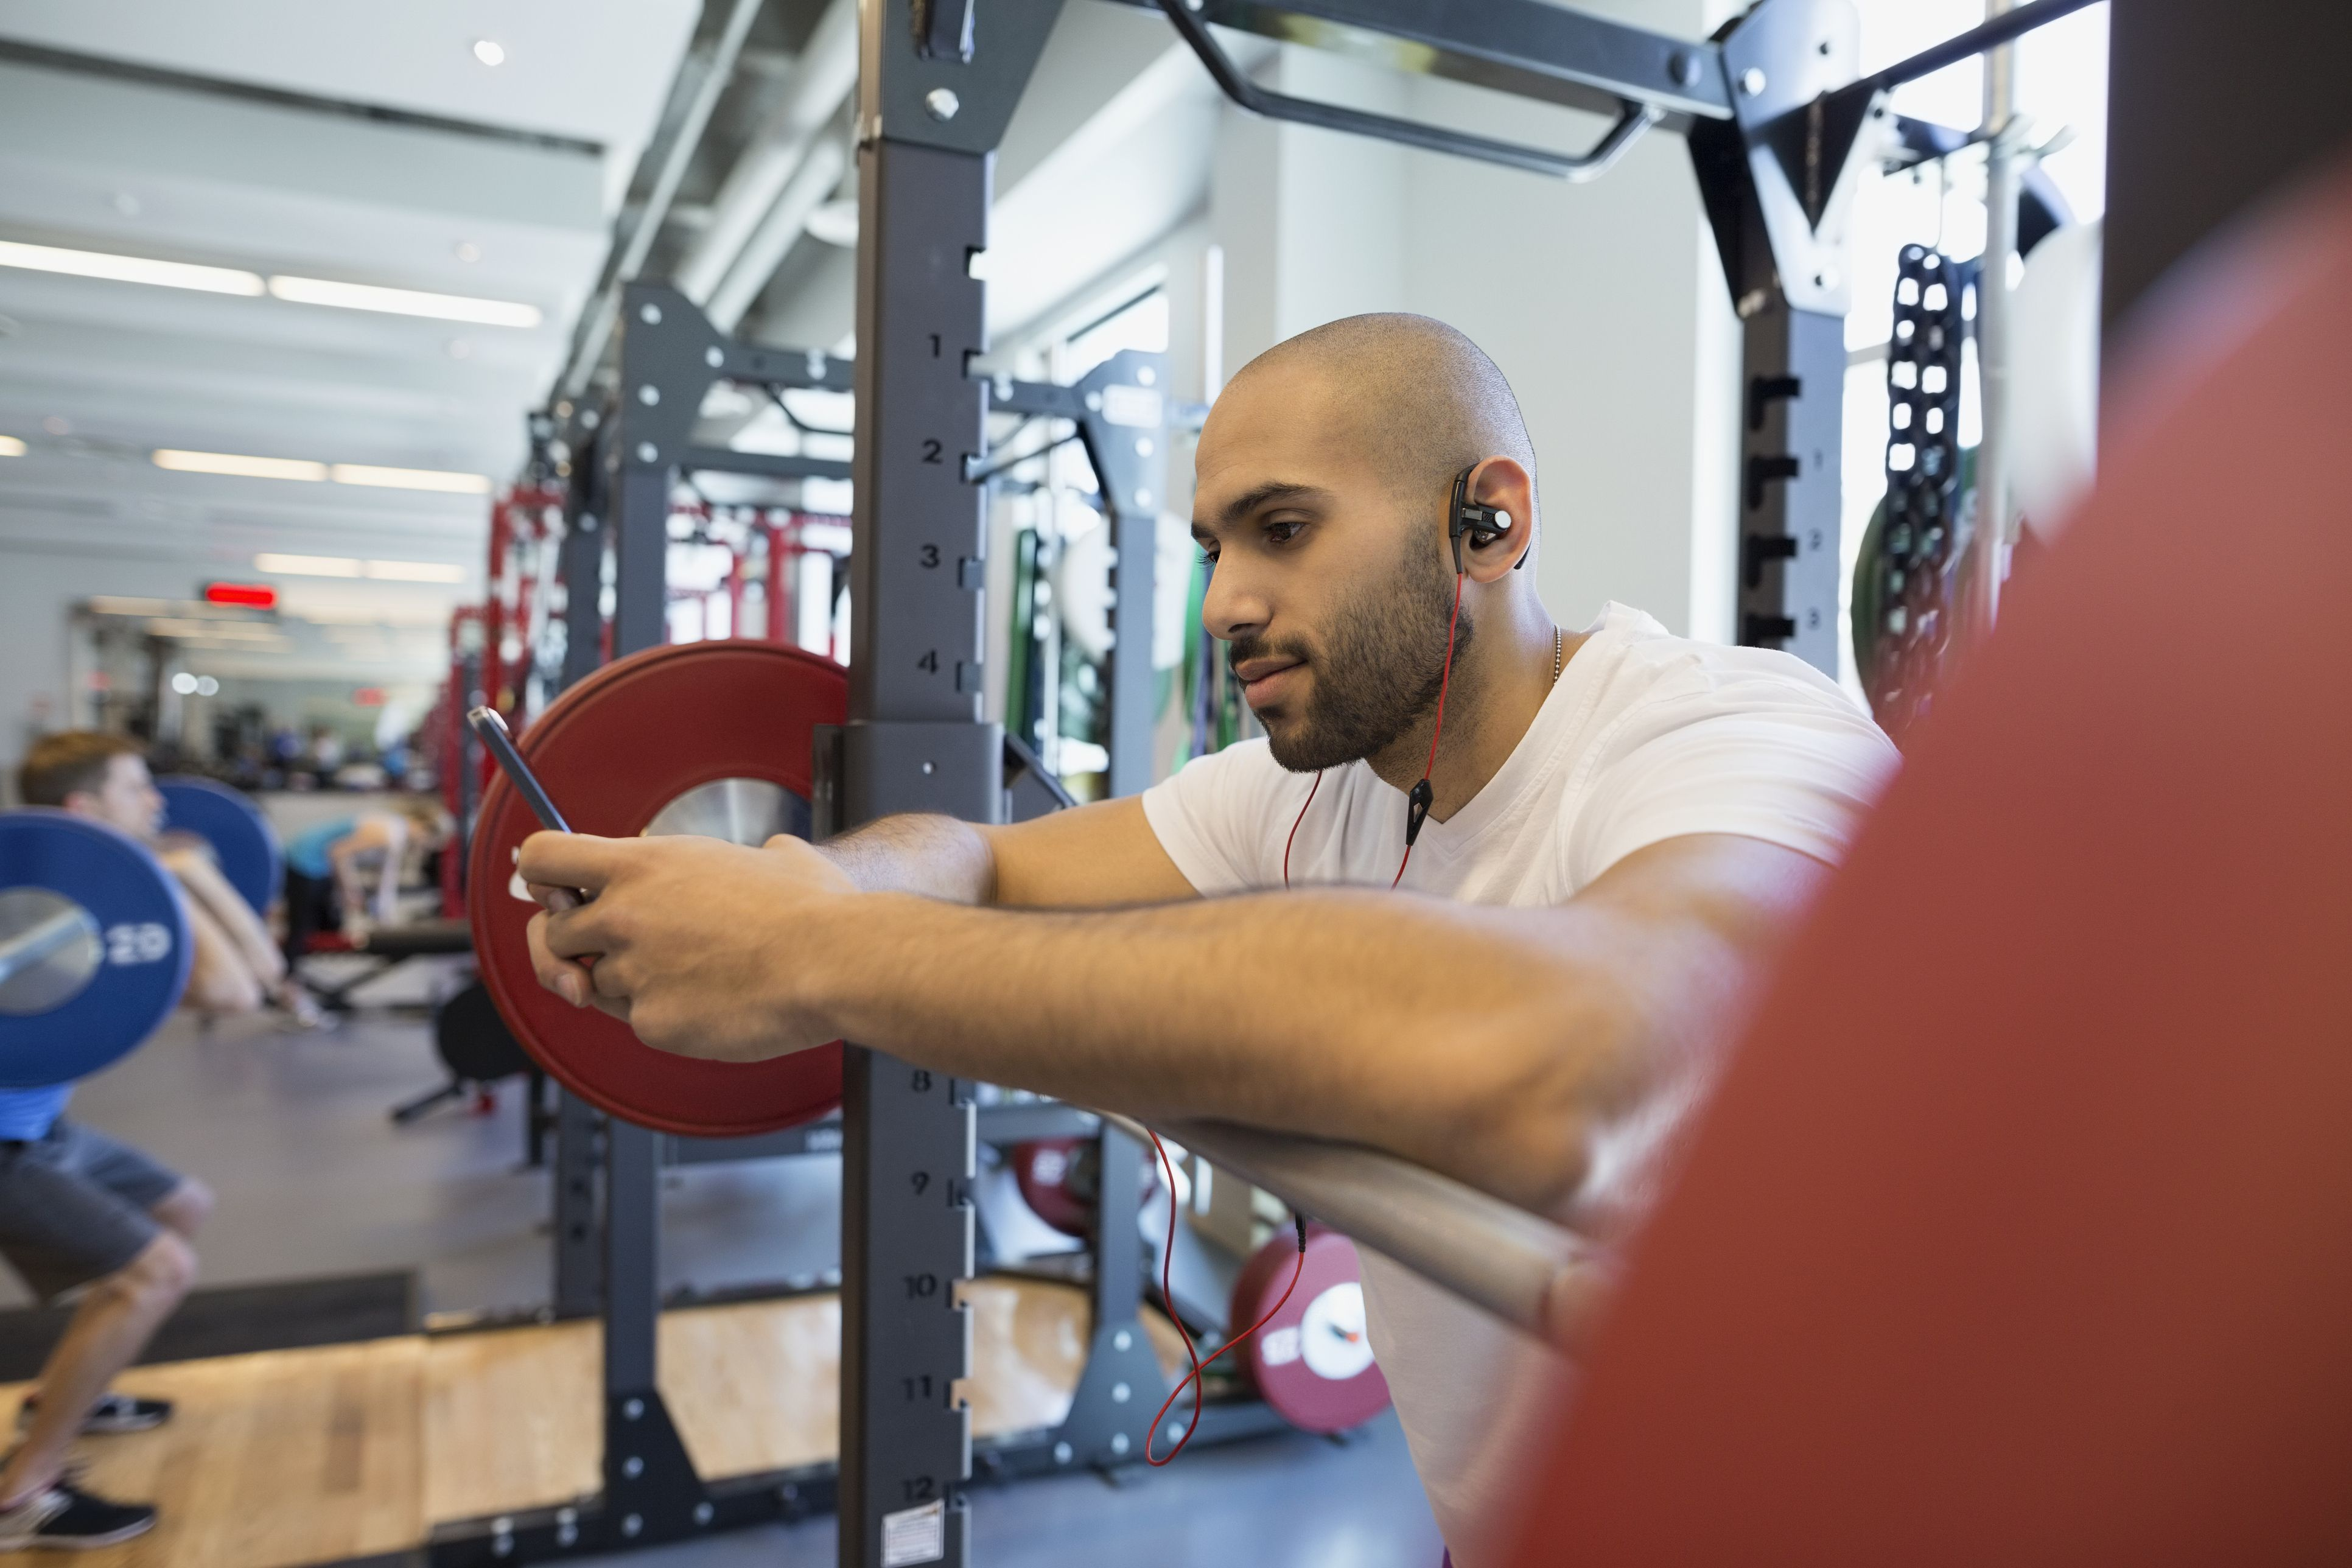 Man using cell phone at barbell in gym